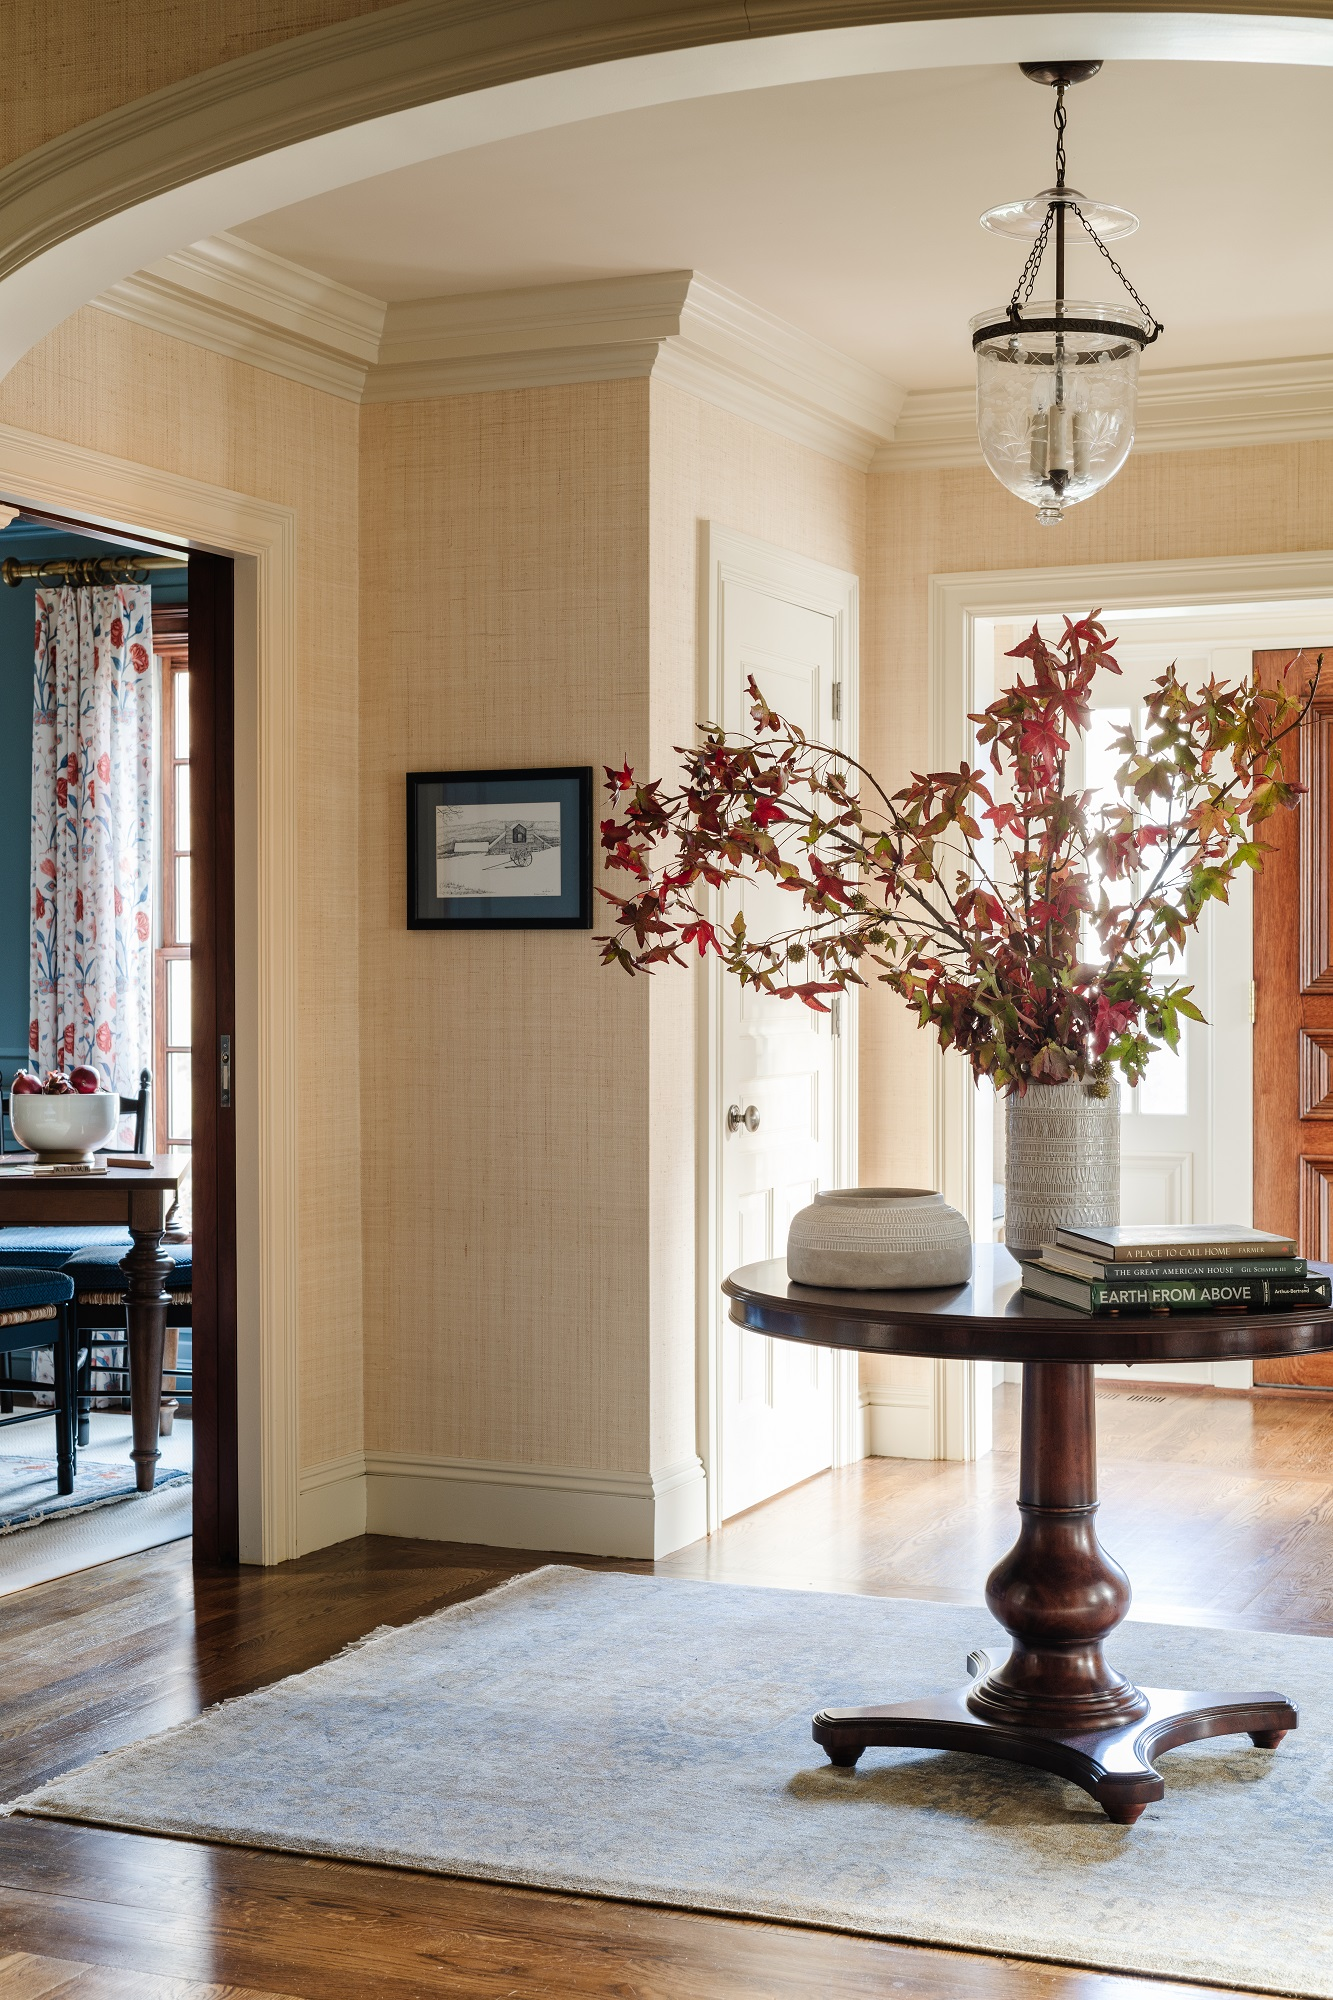 Entryway design with textured wall coverings